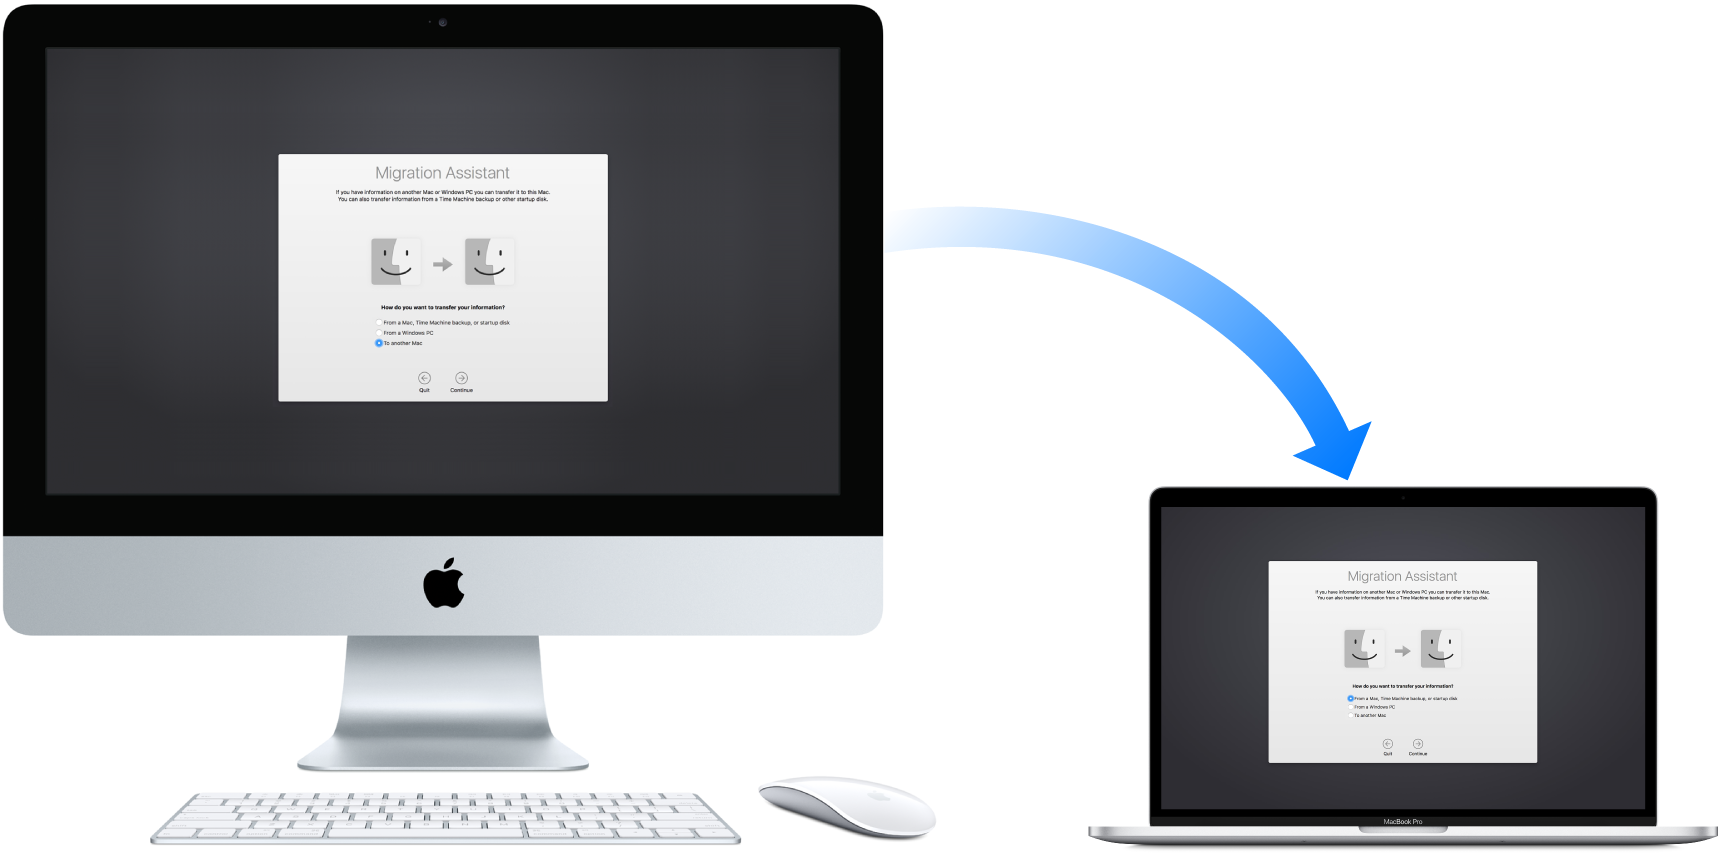 An iMac (old computer) displaying the Migration Assistant screen, with an arrow pointing to a MacBook Pro (new computer) also displaying the Migration Assistant screen.